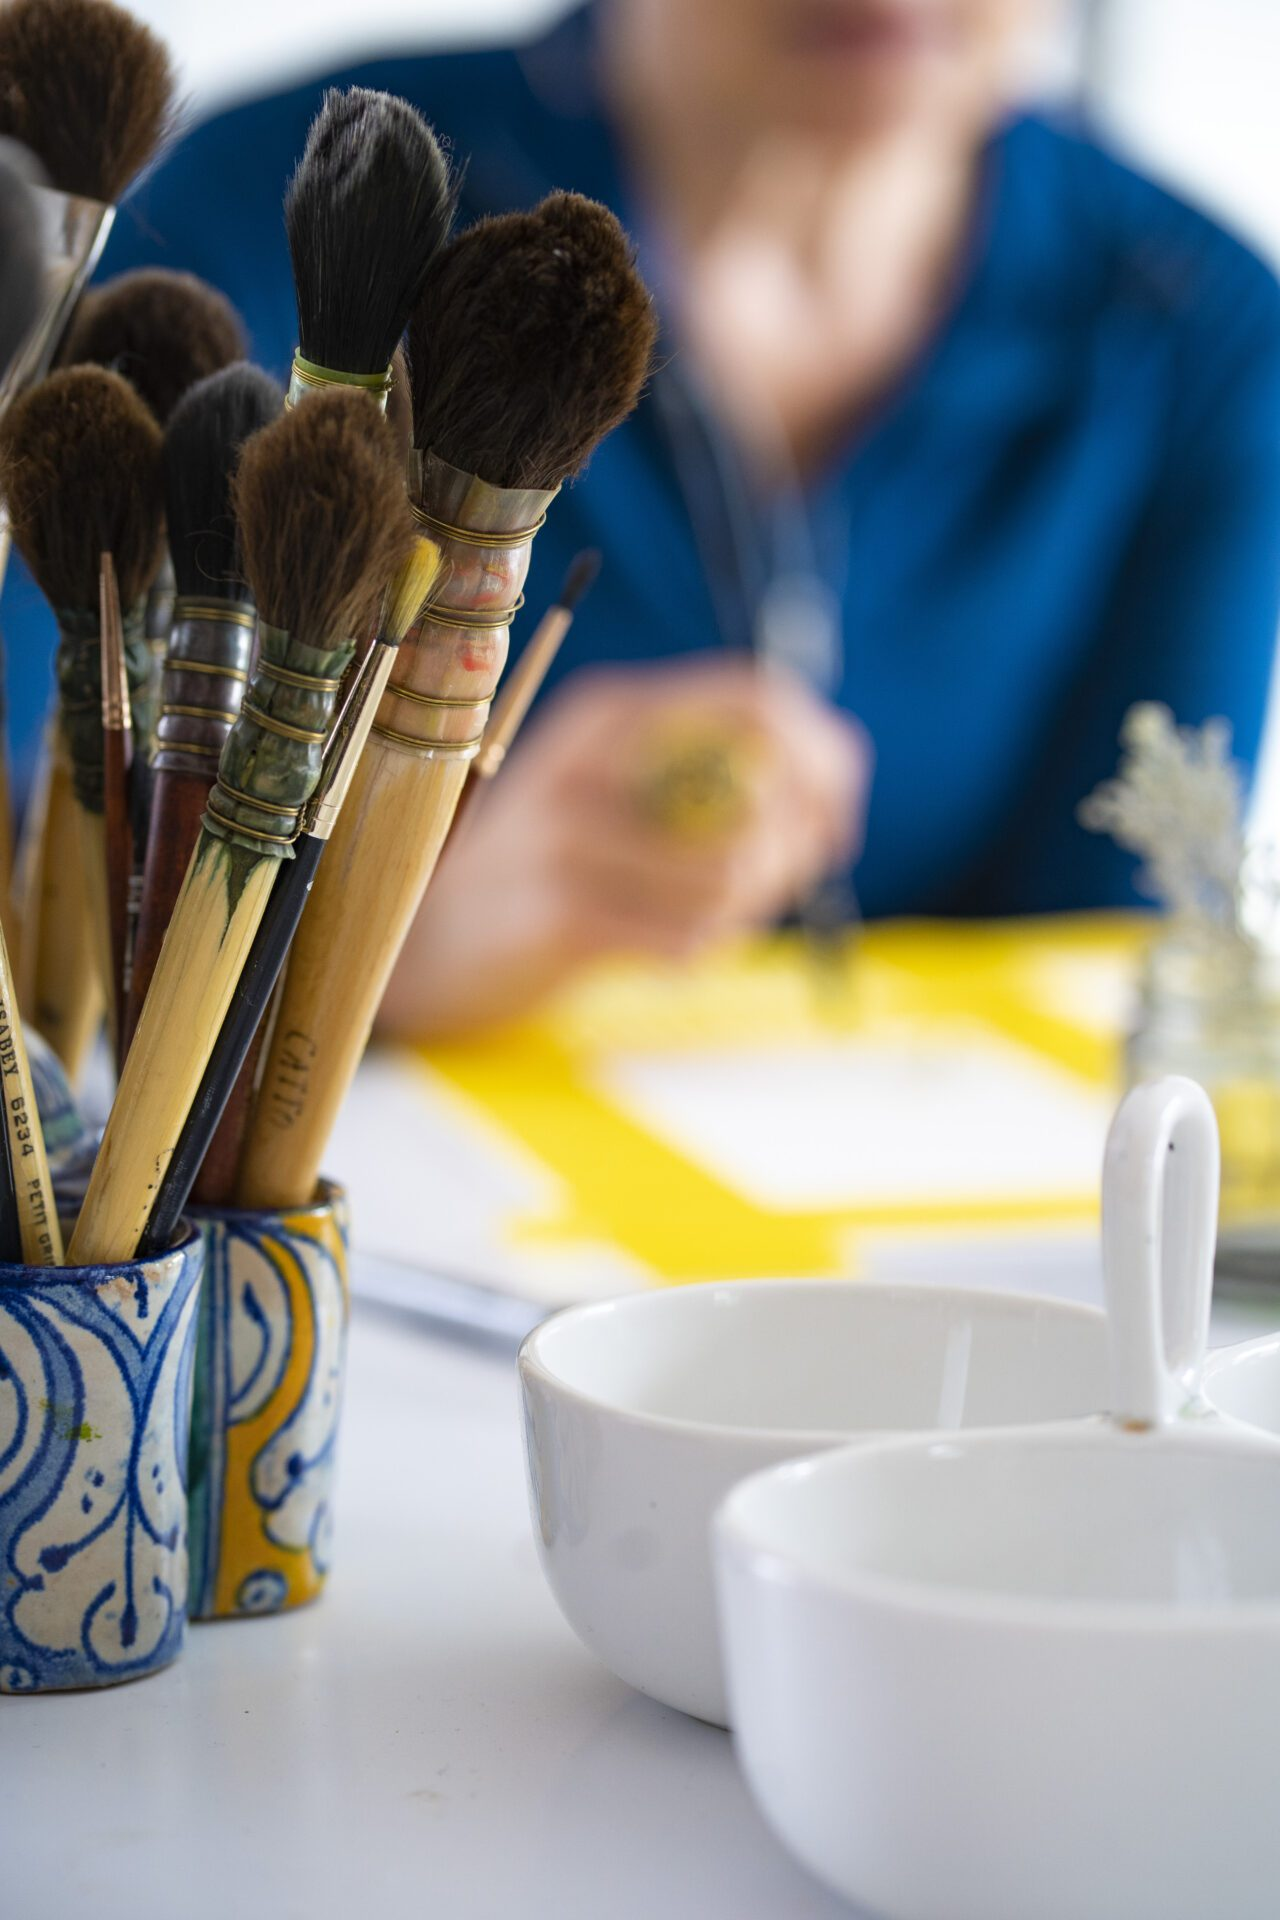 paintbrushes and bowls, isa working in background